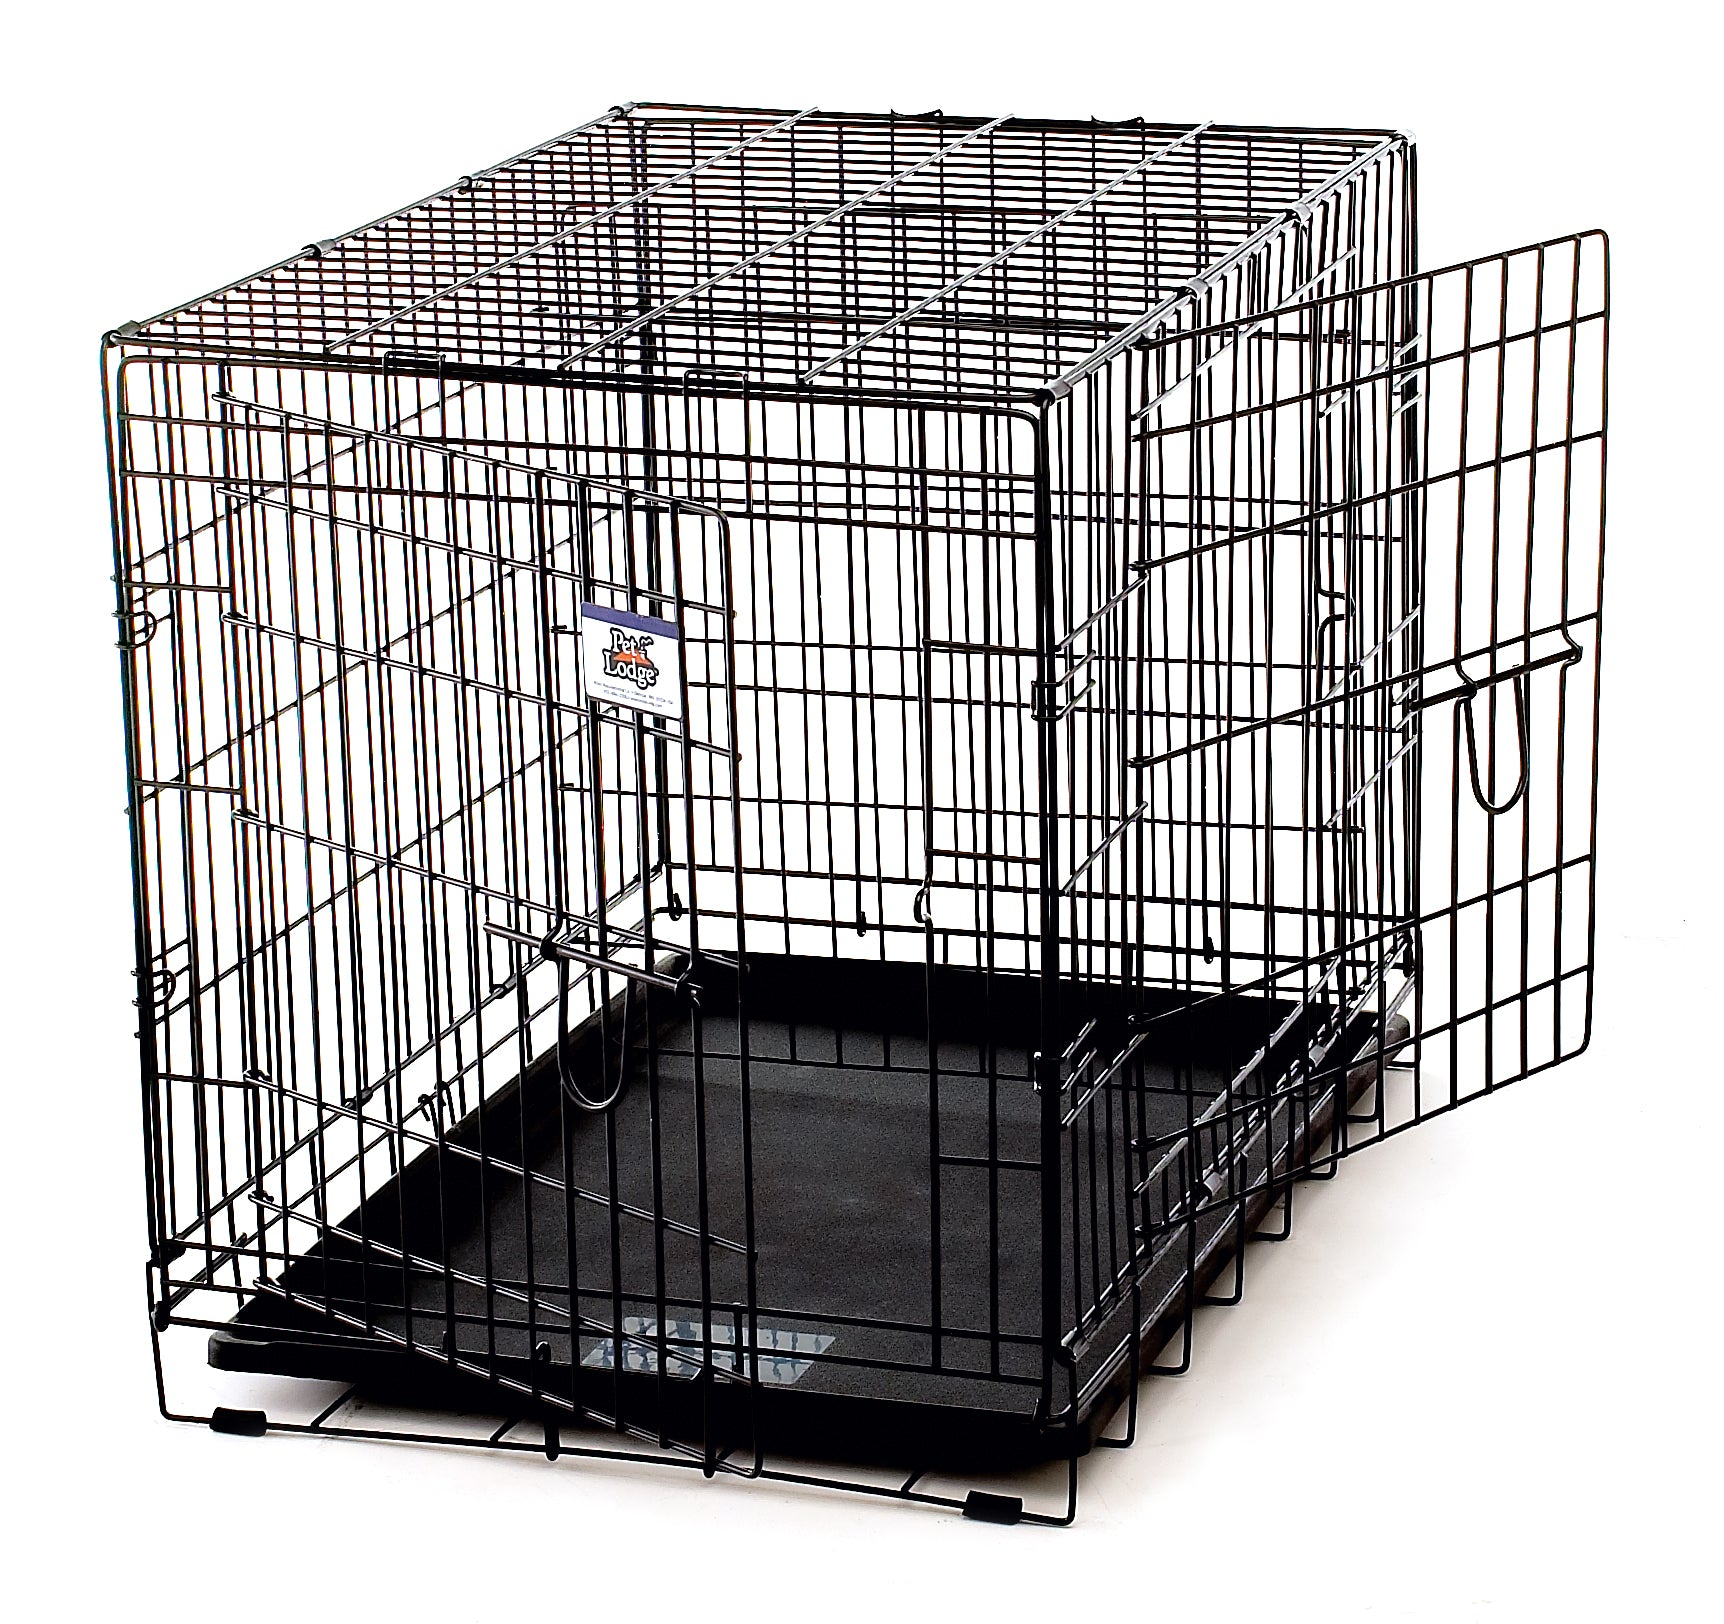 Pet Lodge Wire Pet Crate FARM & RANCH - Animal Care - Pets - Accessories - Kennels & Beds Pet Lodge Teskeys